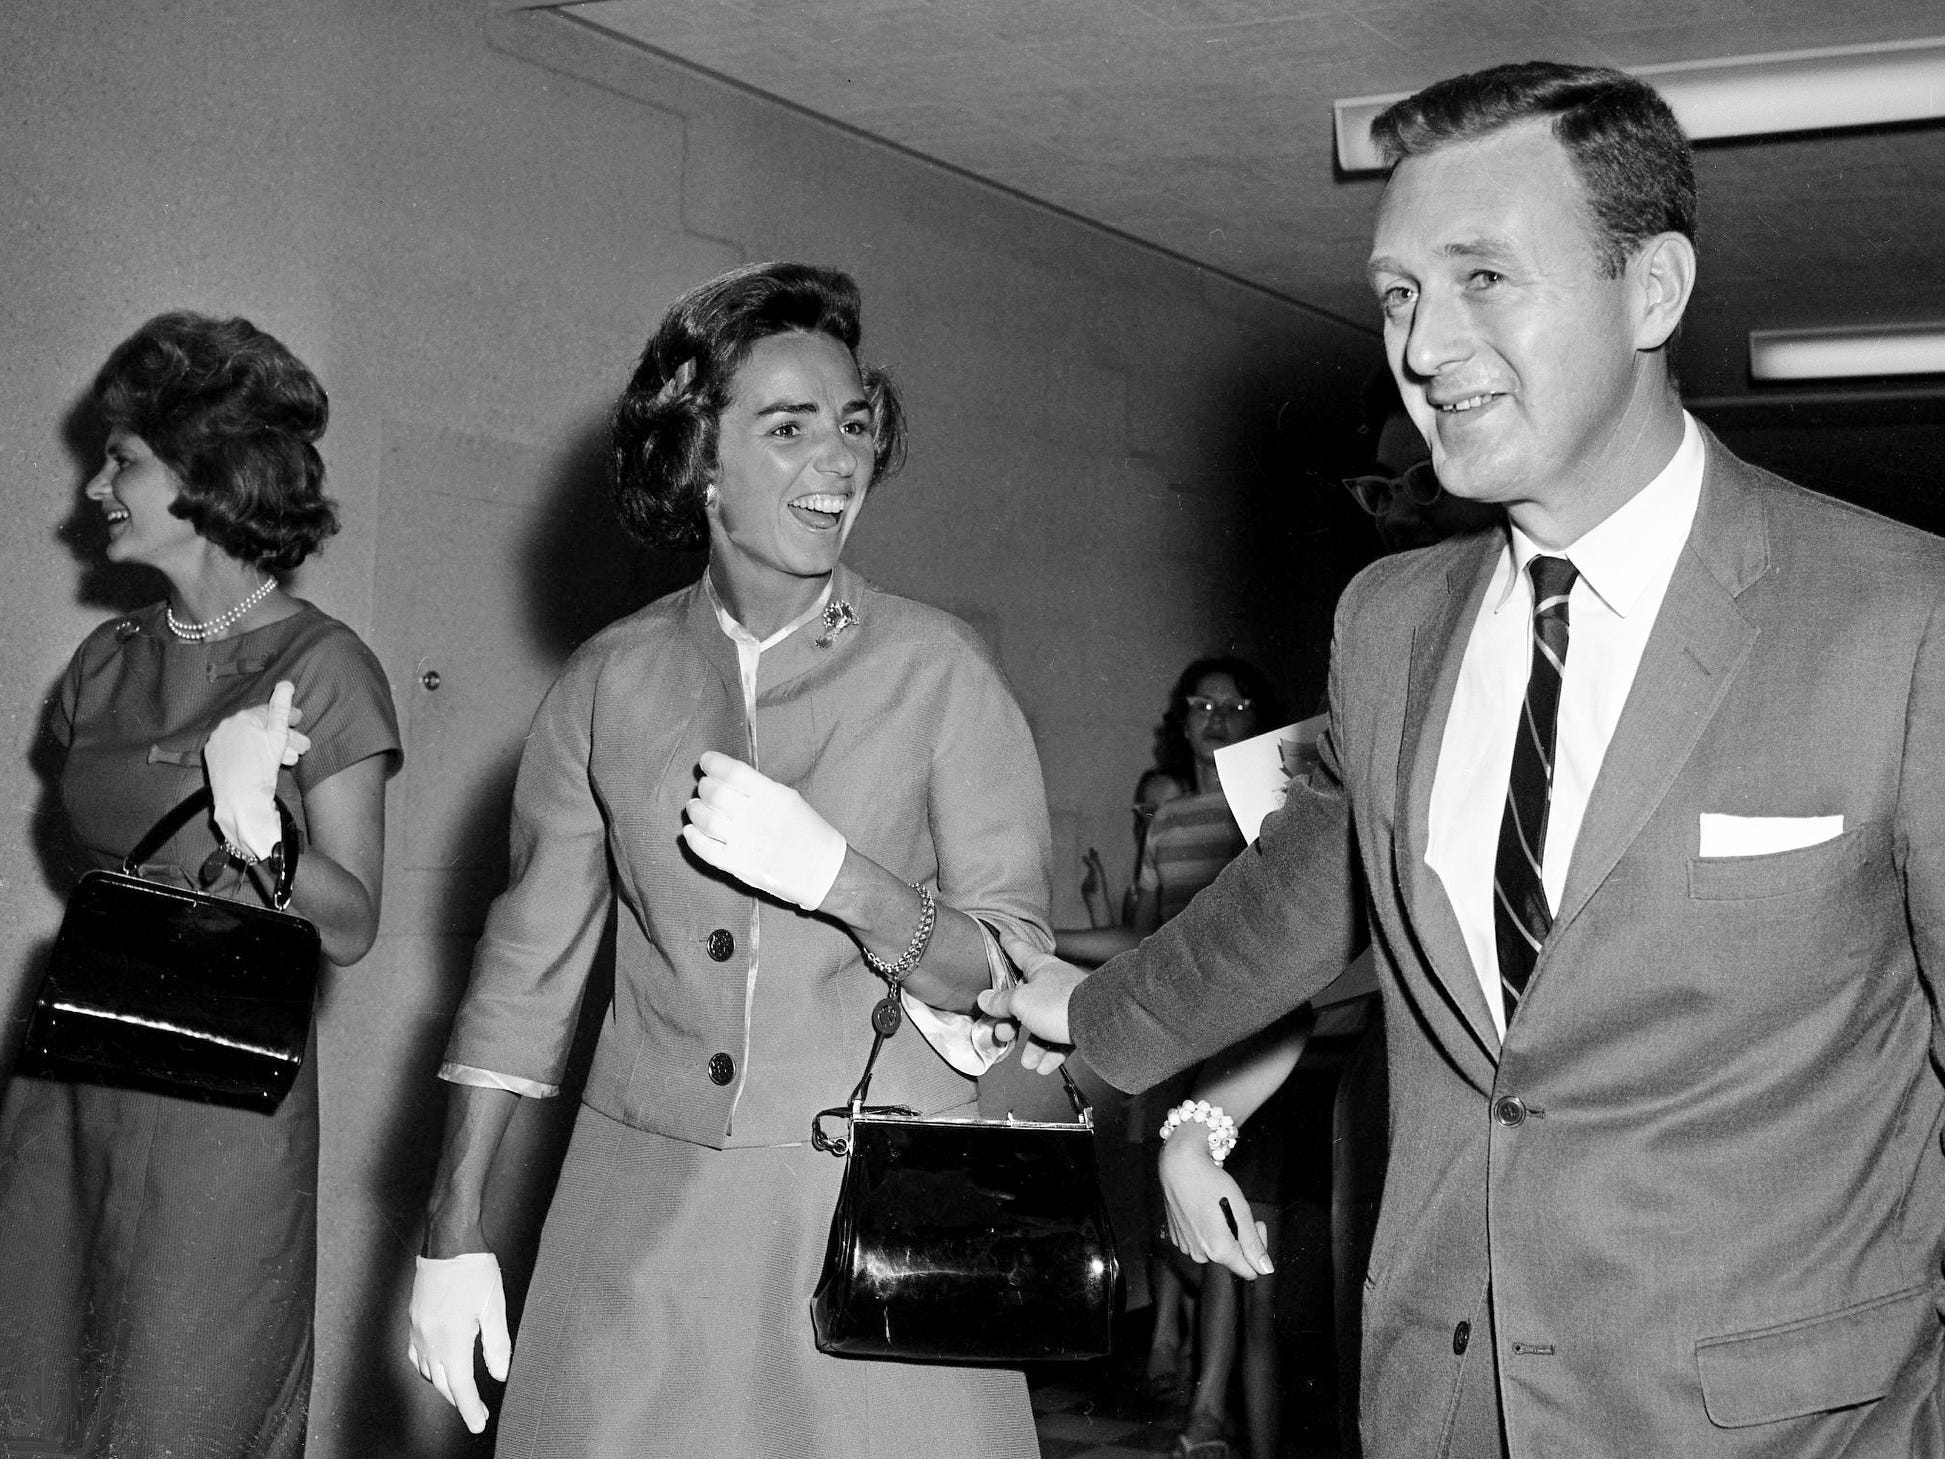 Ethel Kennedy, center, the wife of U.S. Attorney General Robert F. Kennedy, shares a moment with Tennessean editor John Seigenthaler after arriving at Berry Field on May 27, 1962, during a stopover en route to Cullman, Ala., to deliver a commencement address to the all-male graduating class at St. Bernard College.